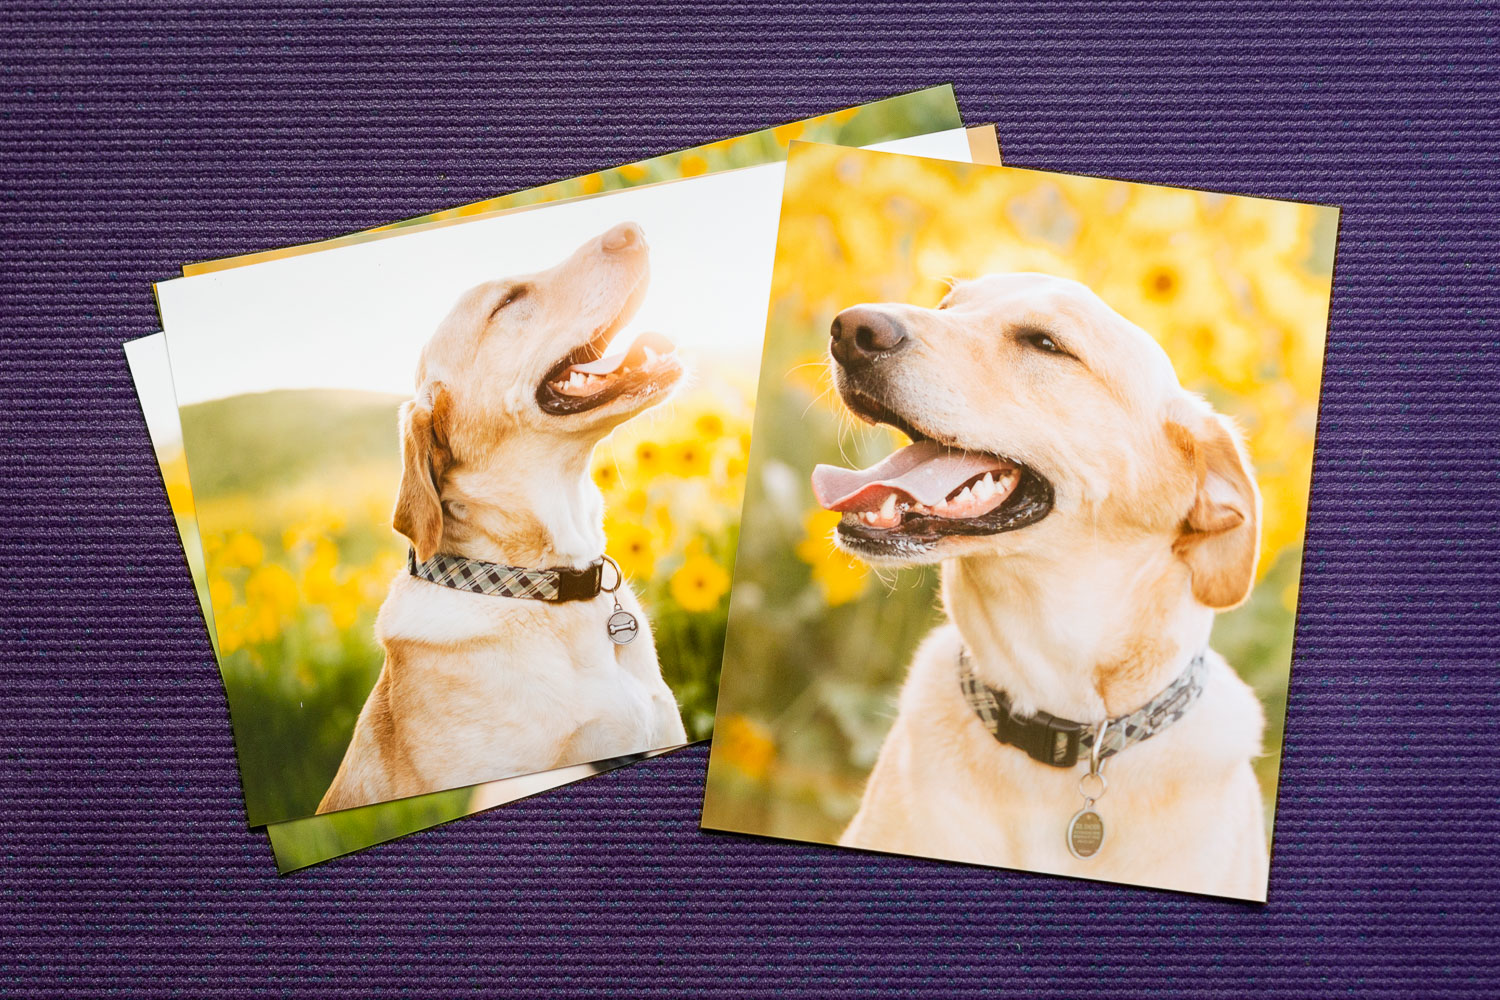 Photo prints of a smiling yellow lab in the flowers sit on a purple background.